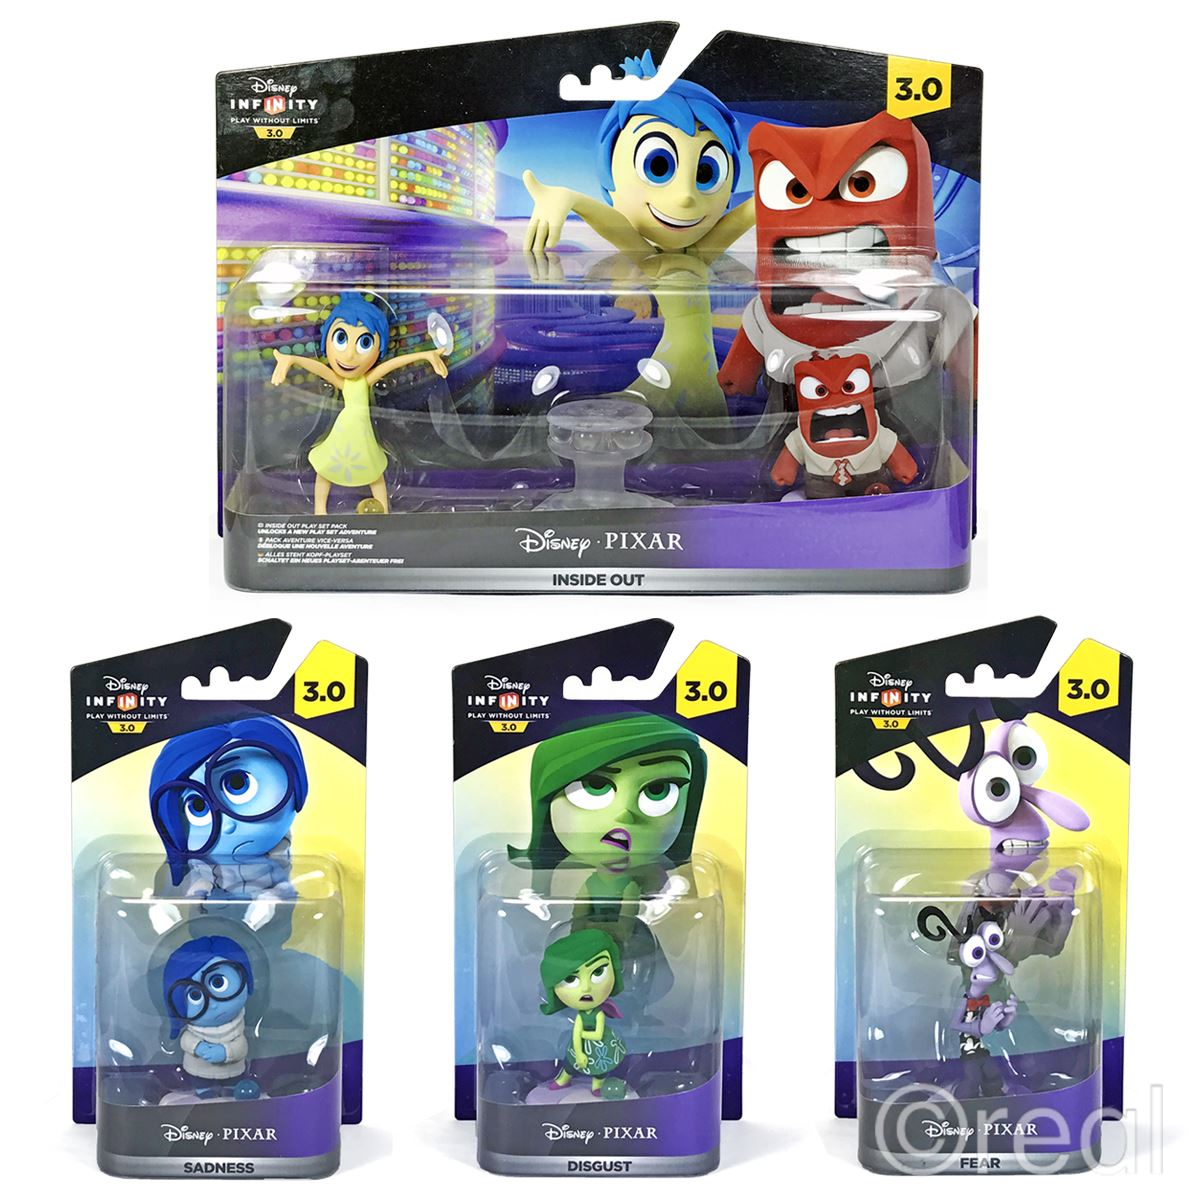 infinity 3 0 playsets rise against newdisneyinfinity30insideoutplayset new disney infinity 30 inside out playsetfeardisgustsadness